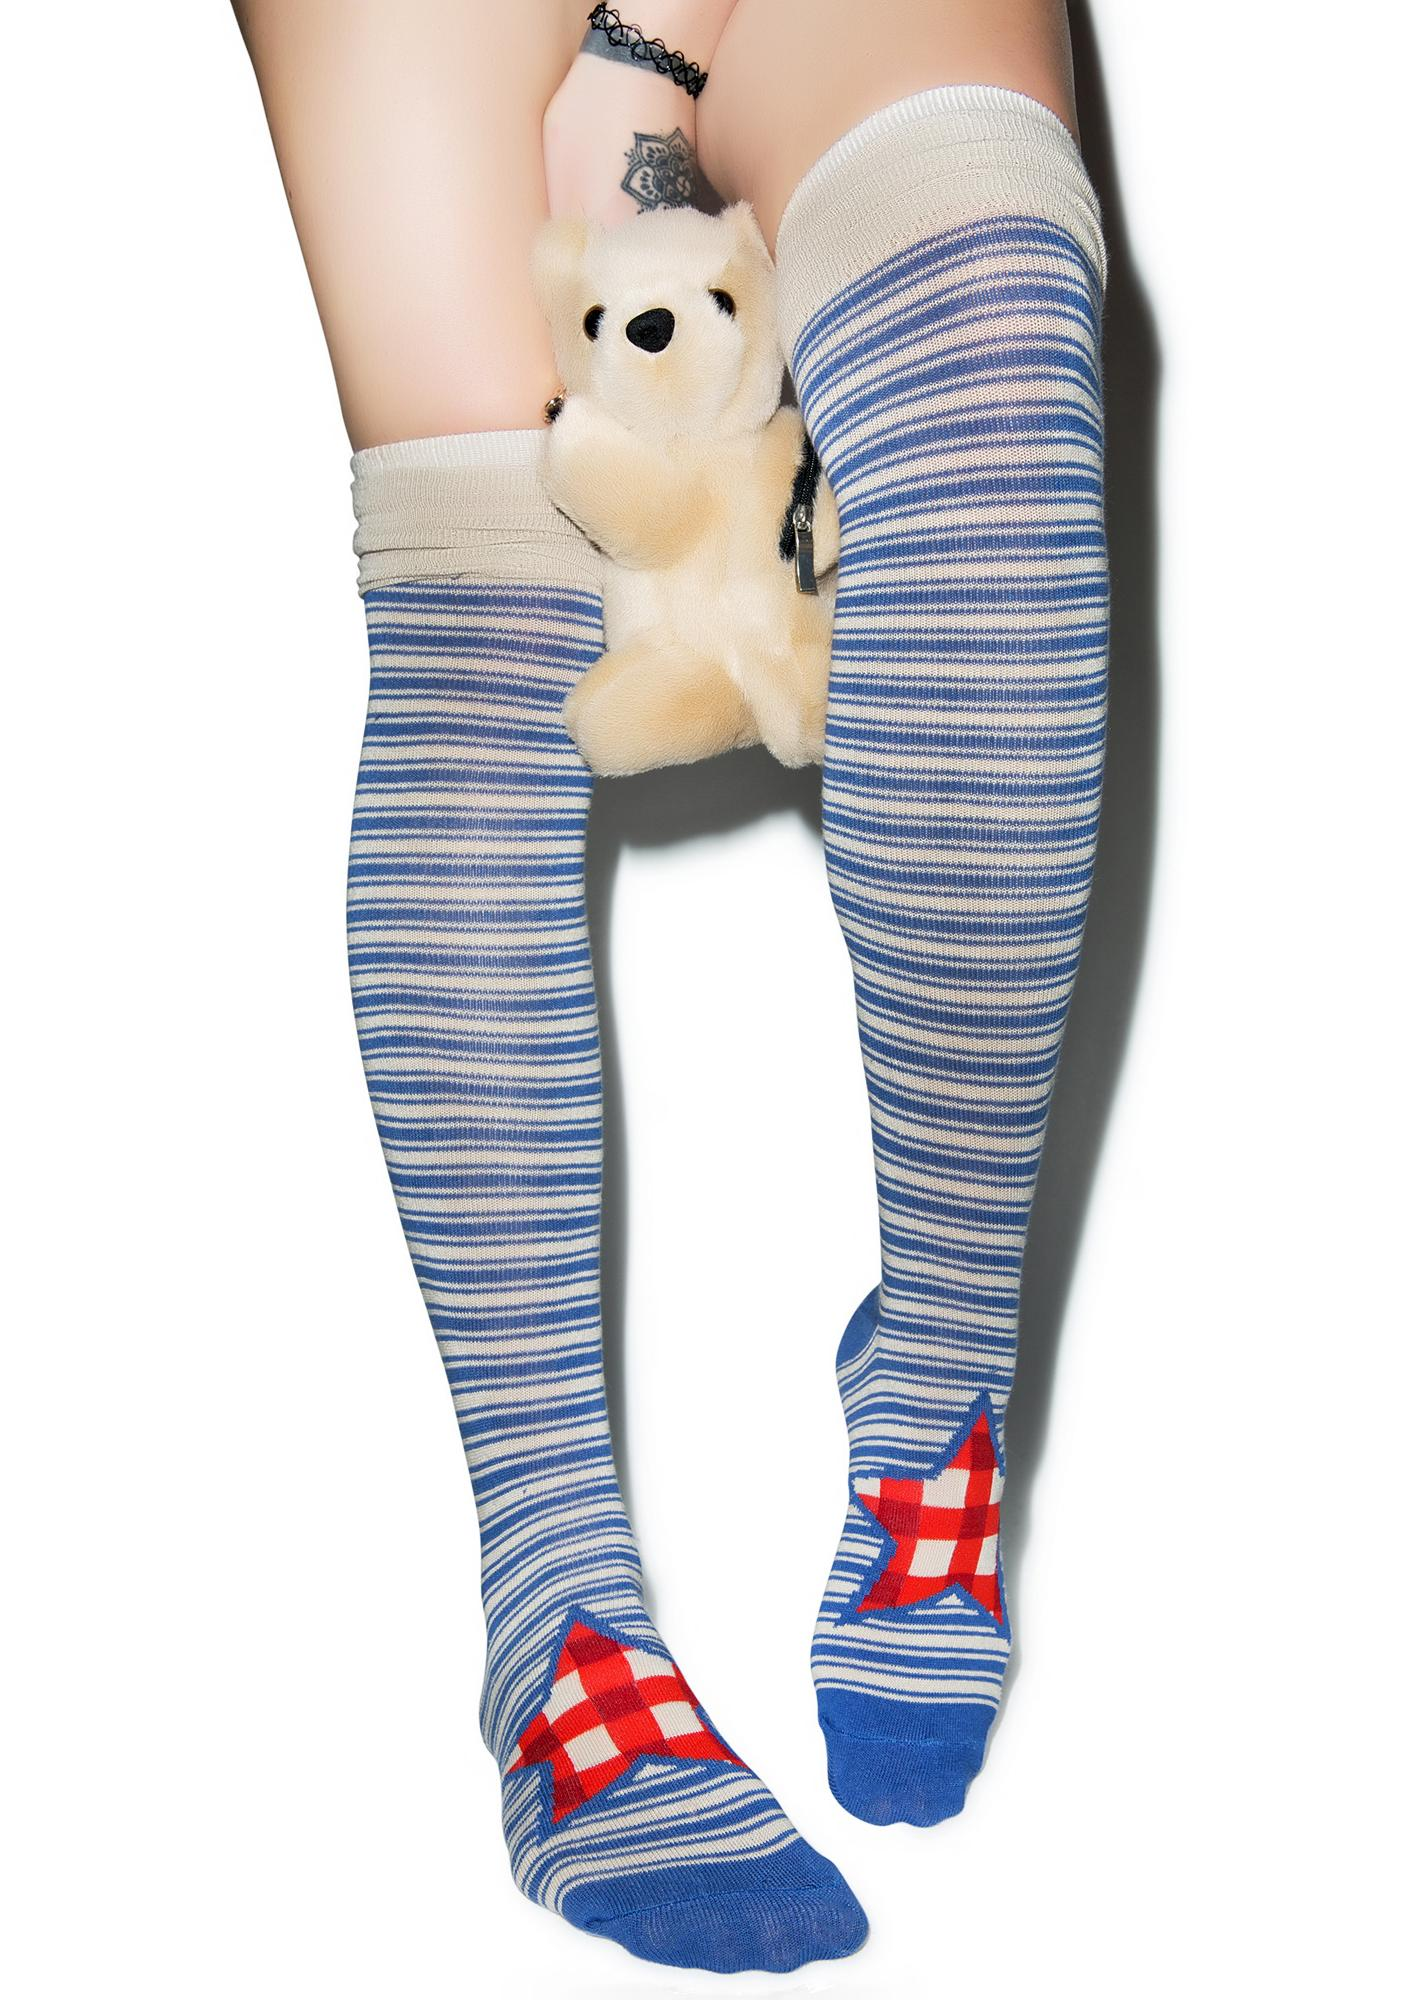 Preppy Pinstripe Knee High Socks